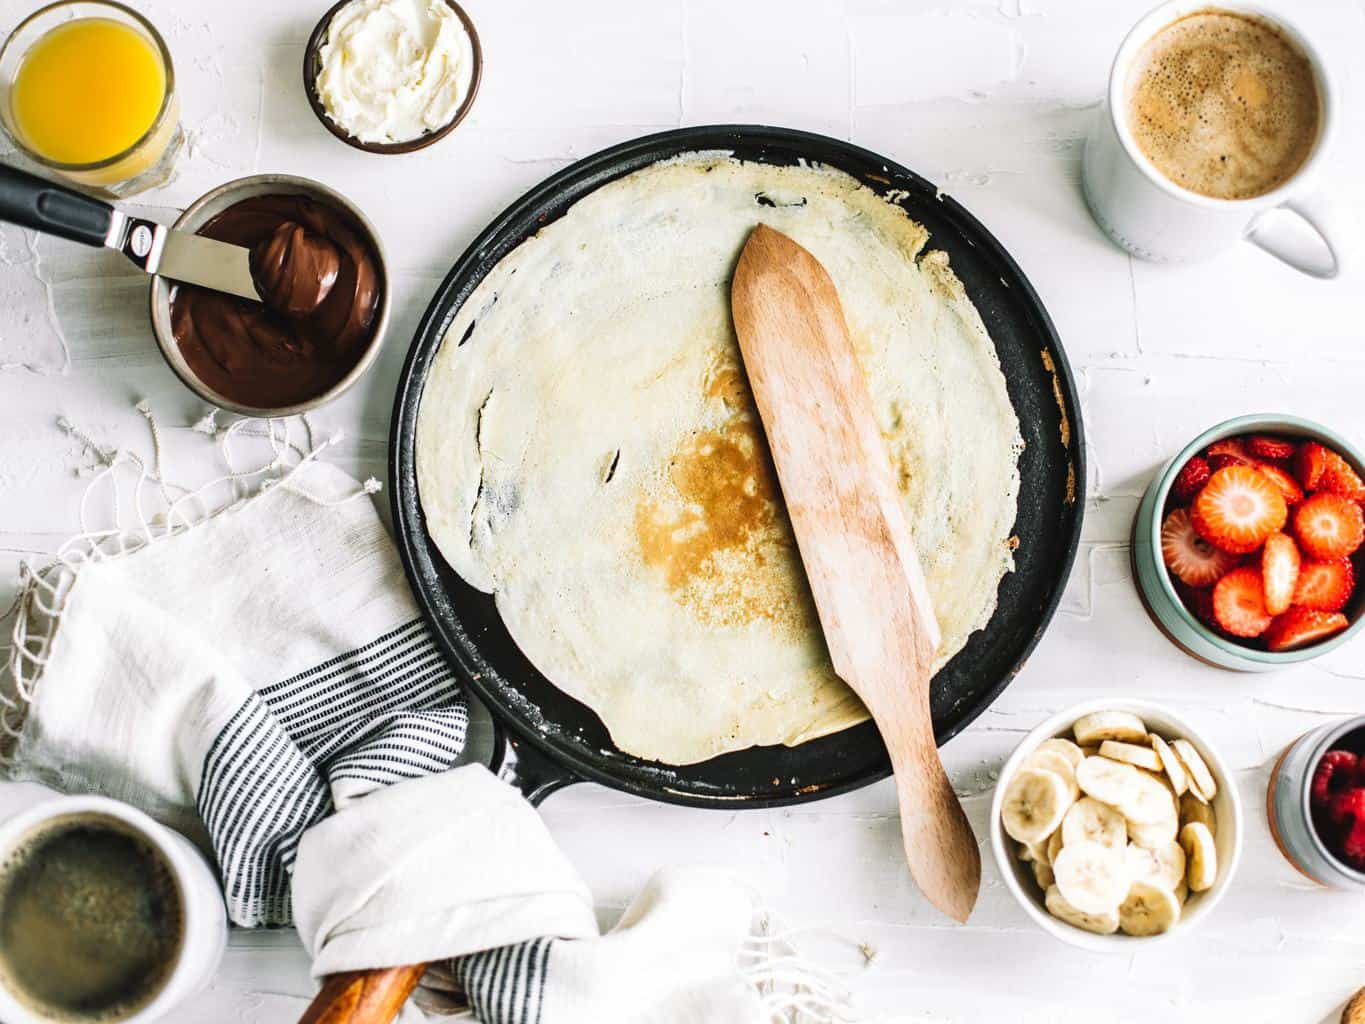 Flipped crepe on a skillet.